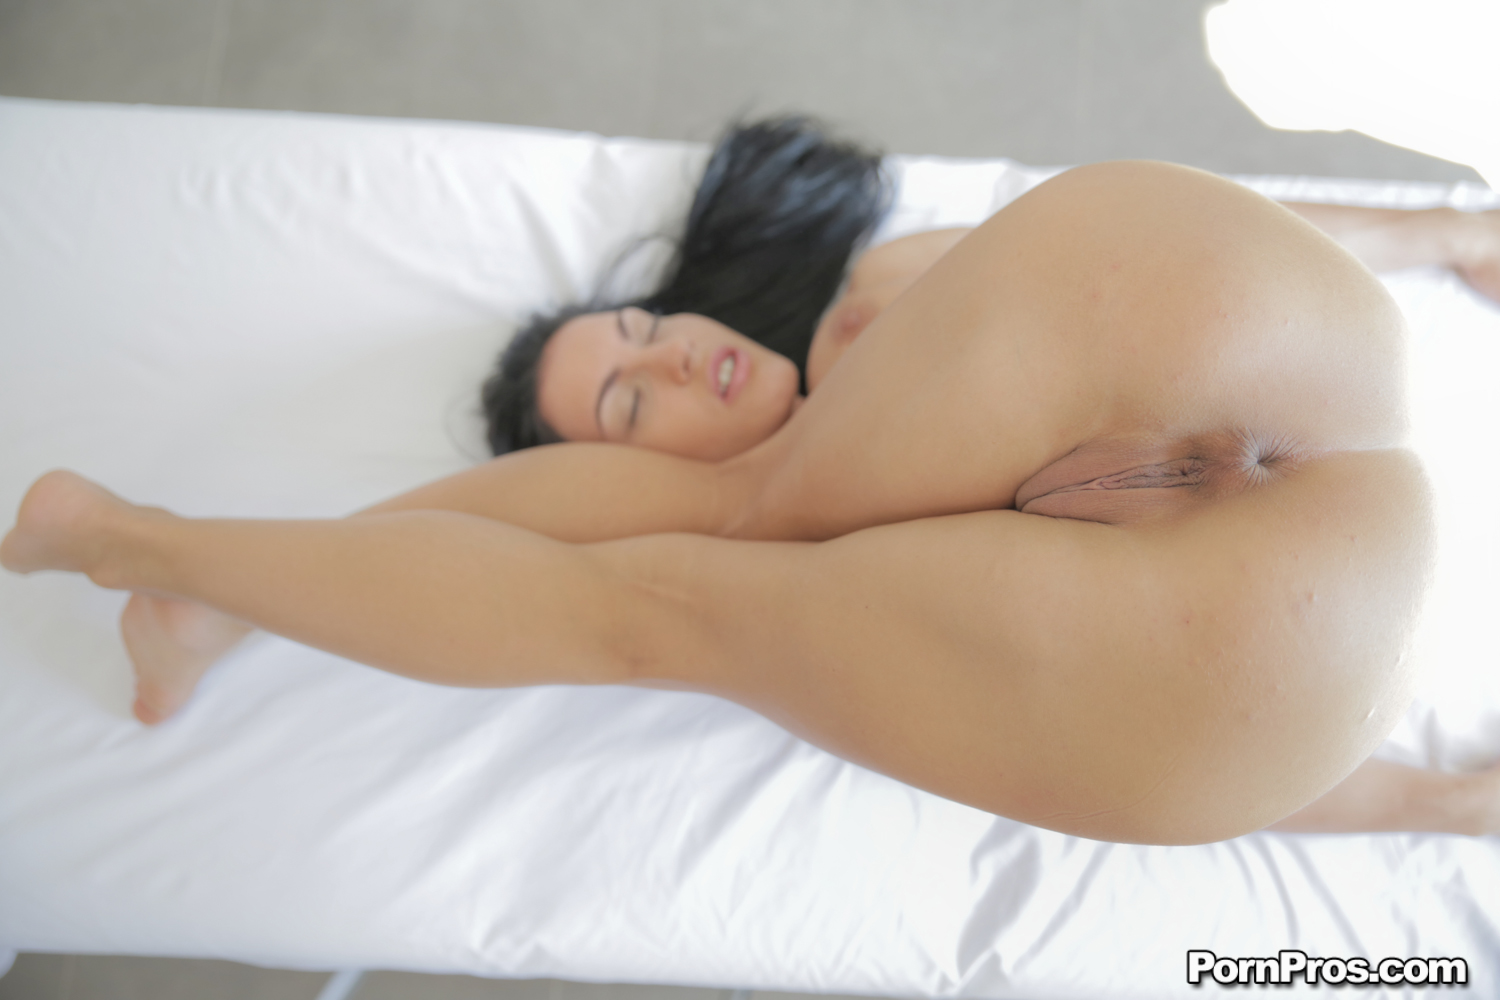 Hd pornpros sexy jynx maze gets her tight ass fucked 5